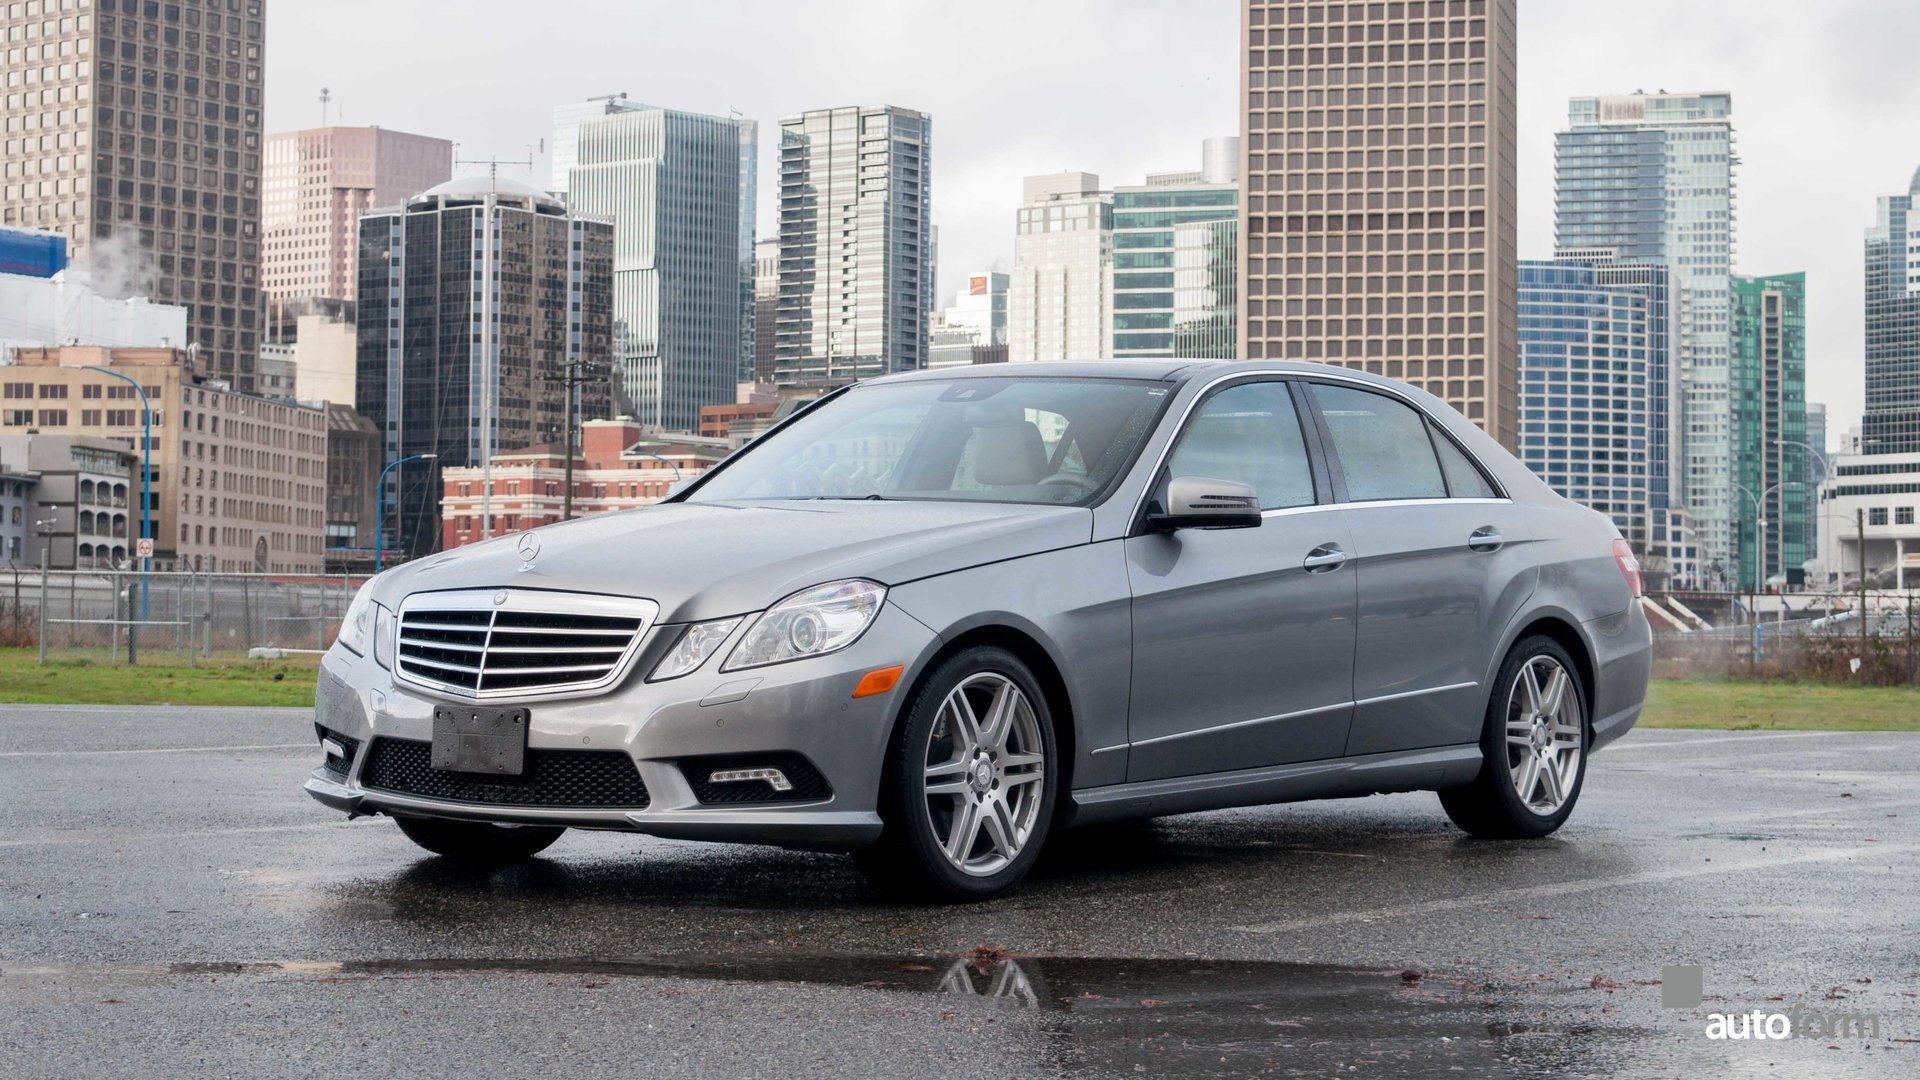 2010 mercedes benz e350 luxury 4matic for sale 78847 mcg. Black Bedroom Furniture Sets. Home Design Ideas